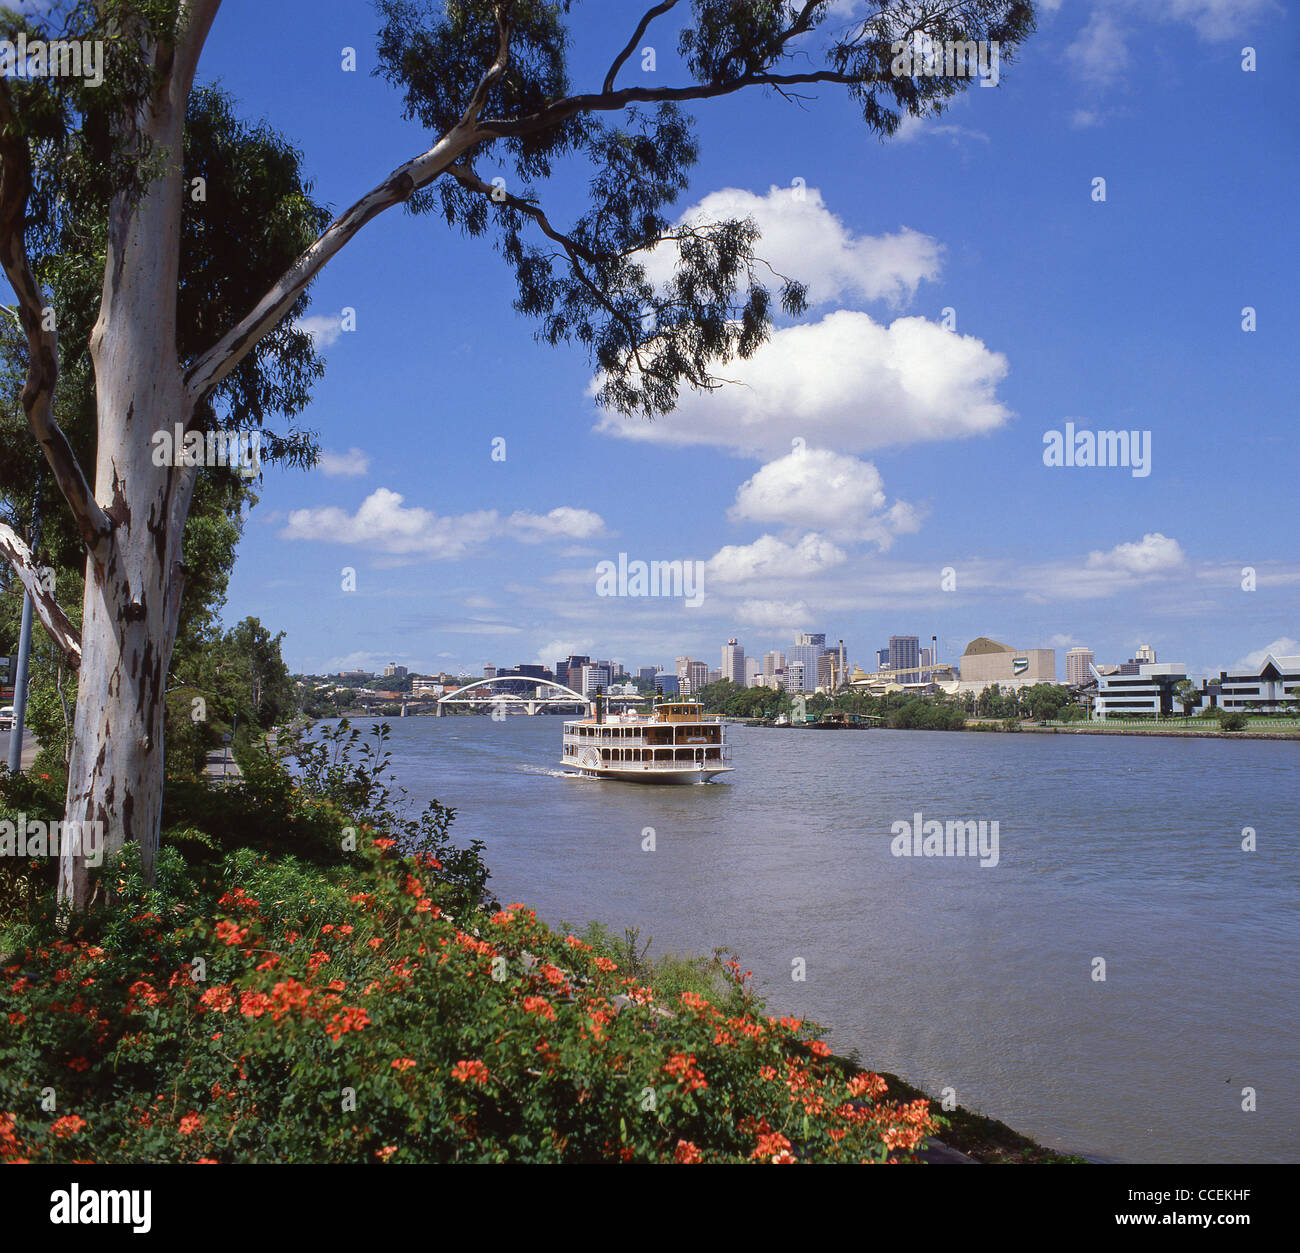 Paddle steamer riverboat on Brisbane River, Brisbane, Queensland, Australia - Stock Image